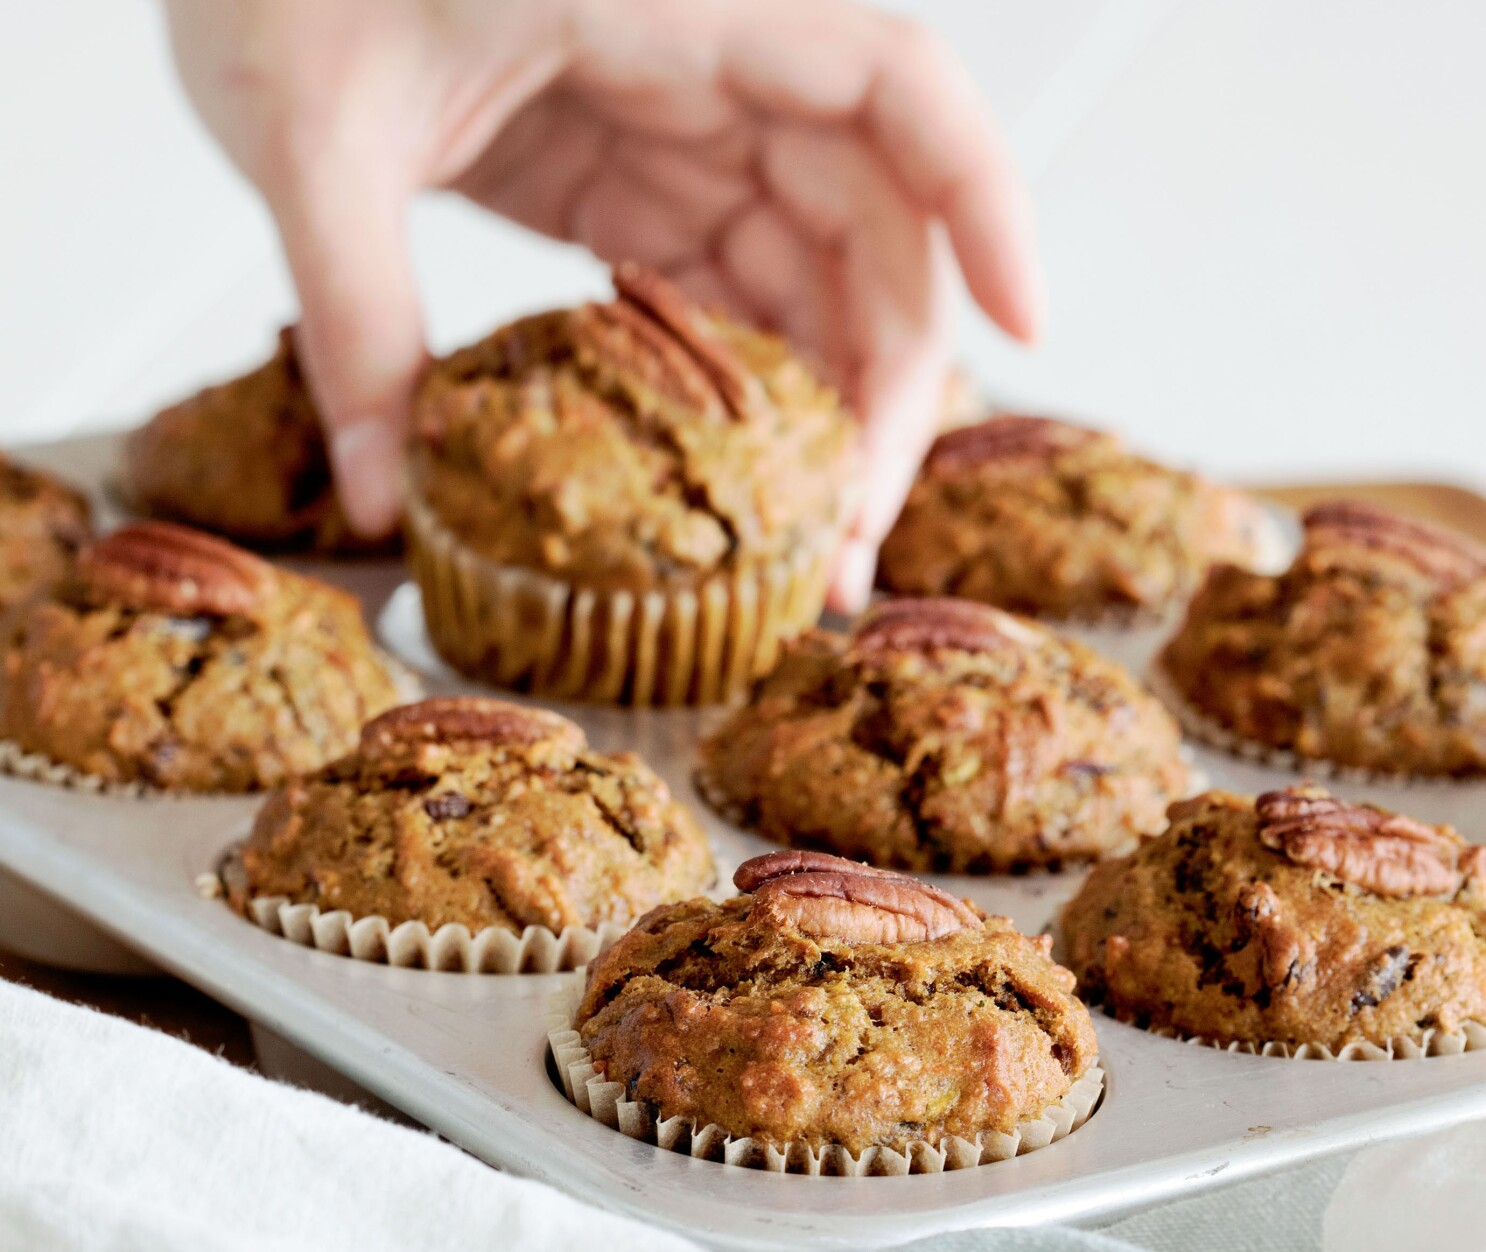 Muffin recipe is loaded with fruit and vegetables